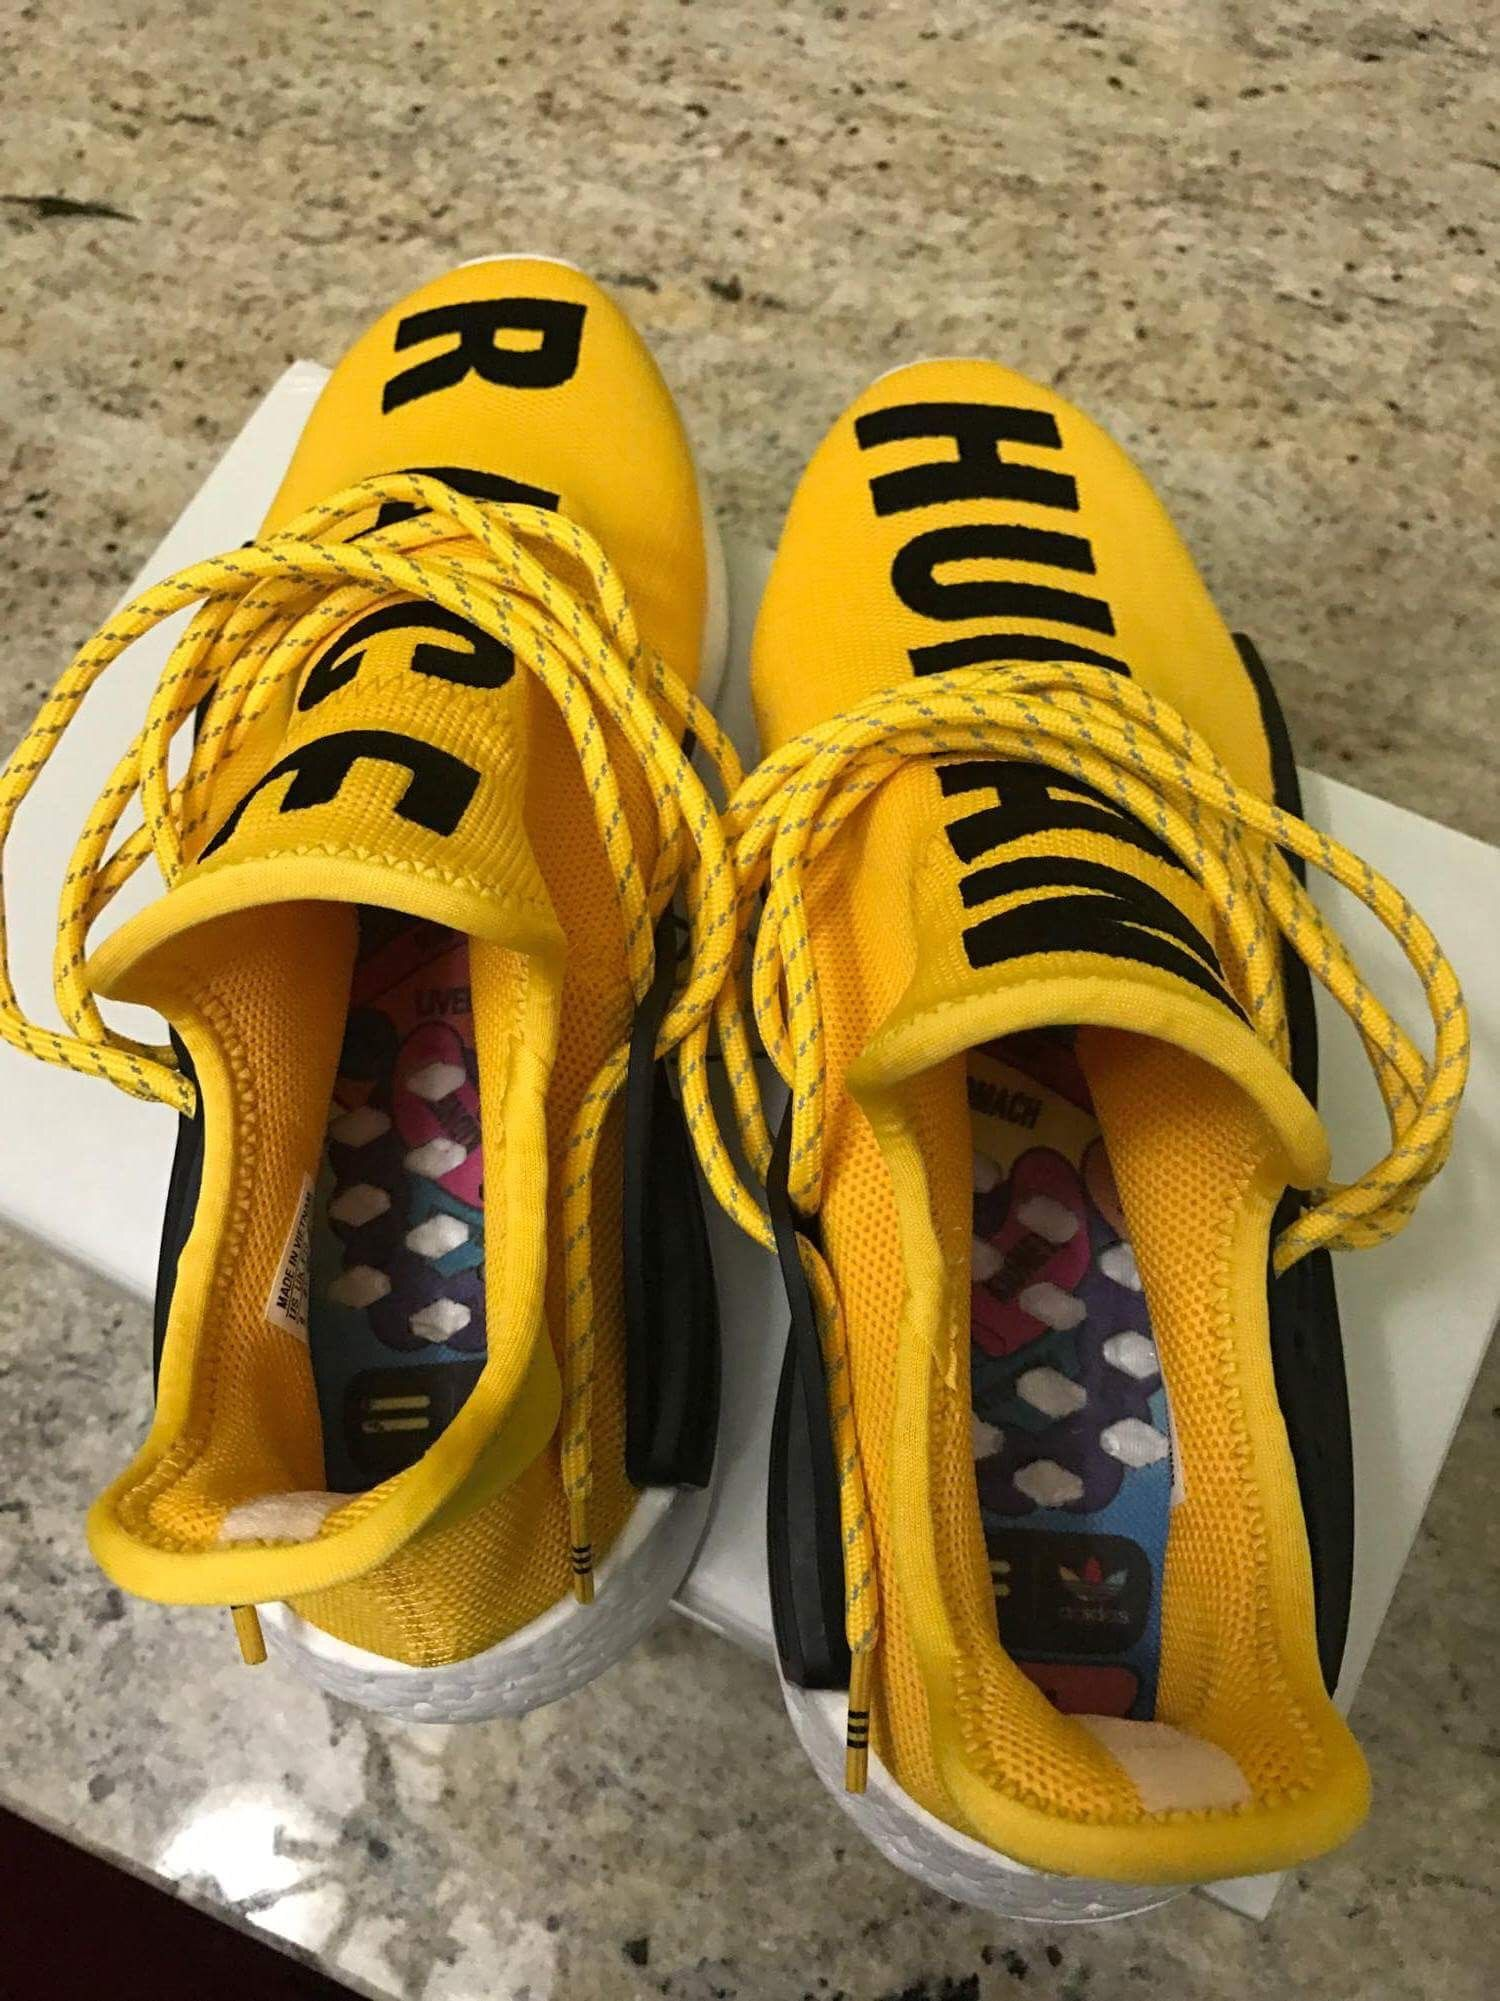 Authentic Adidas Human Race NMD x Pharrell Williams Yellow HD On